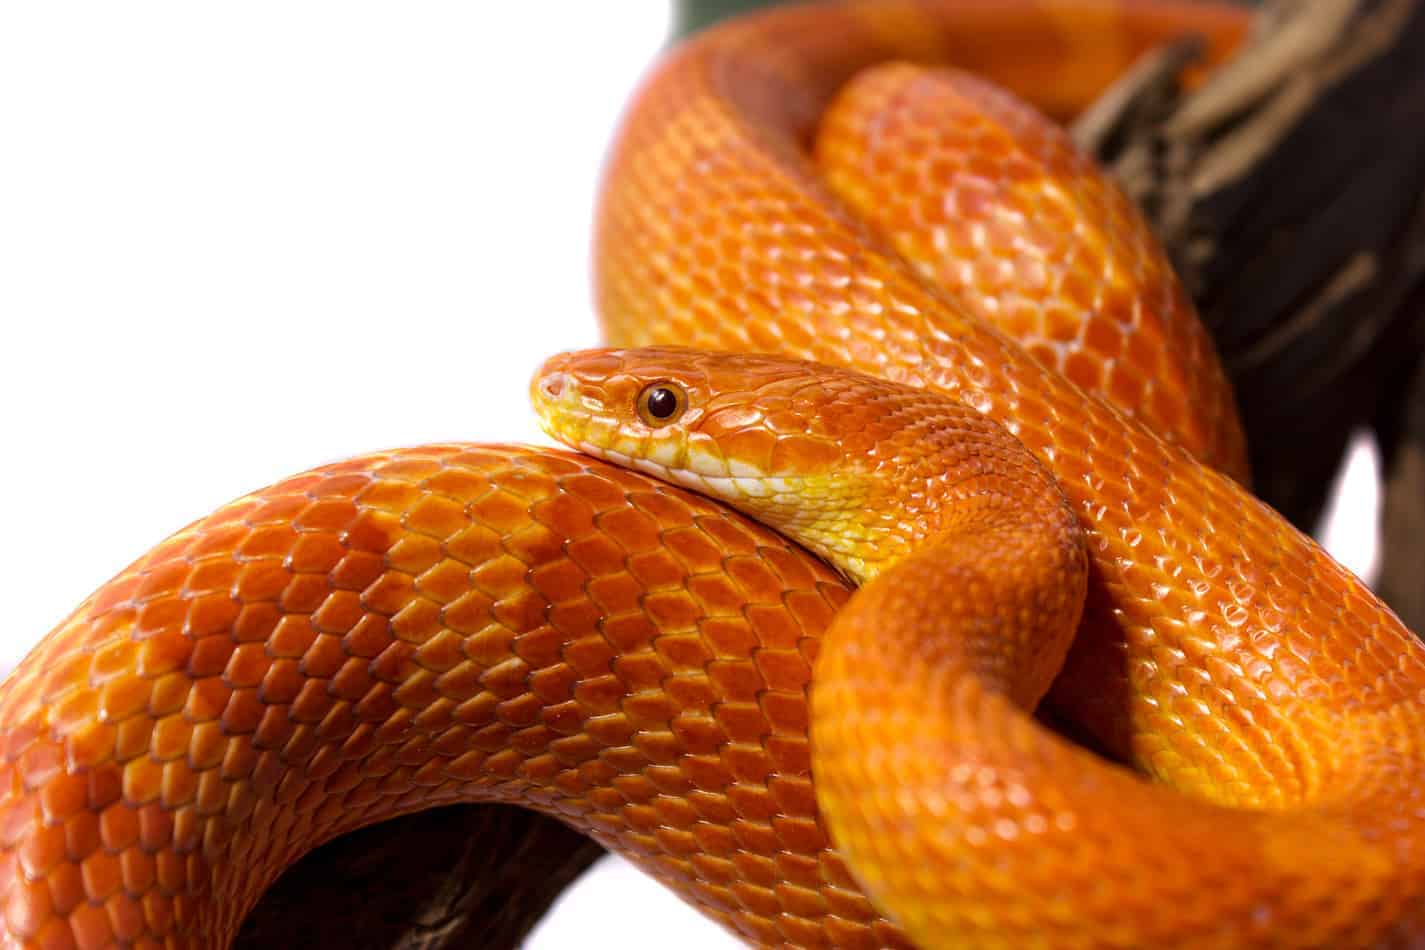 Cutest Pet Snake Breeds With Pictures Automobilių Nuoma Jums